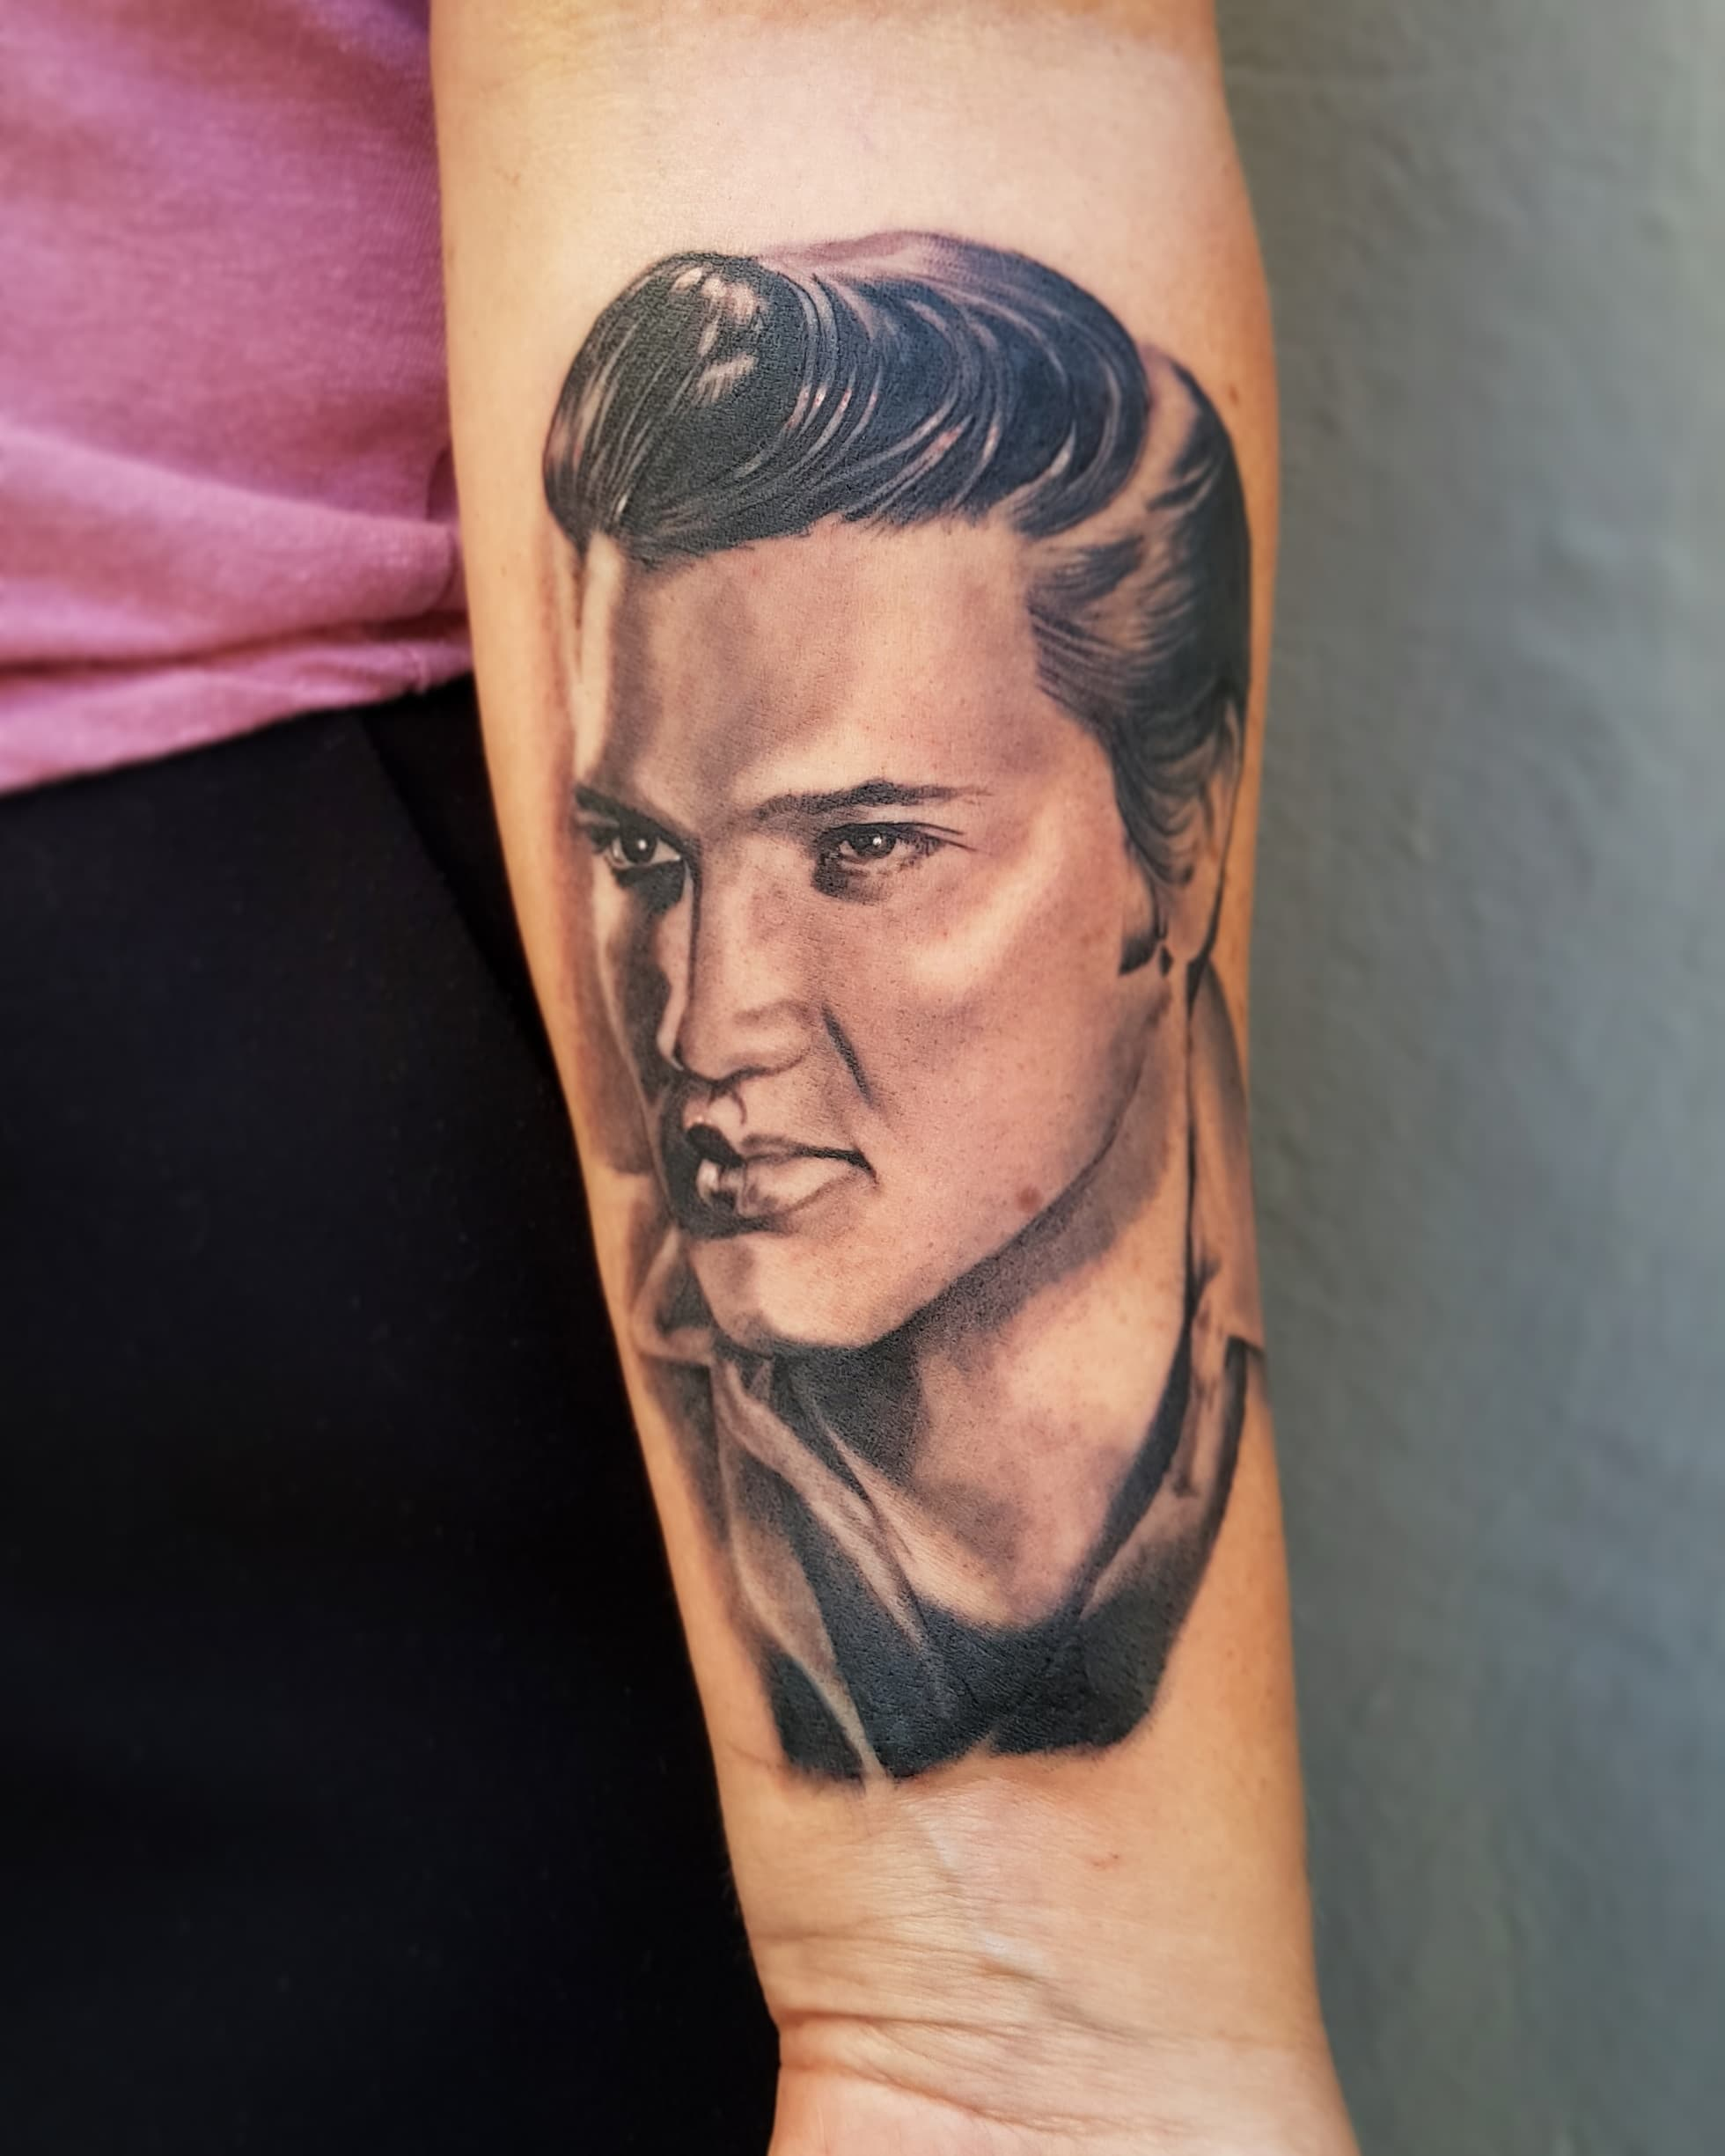 ElvisPrestley